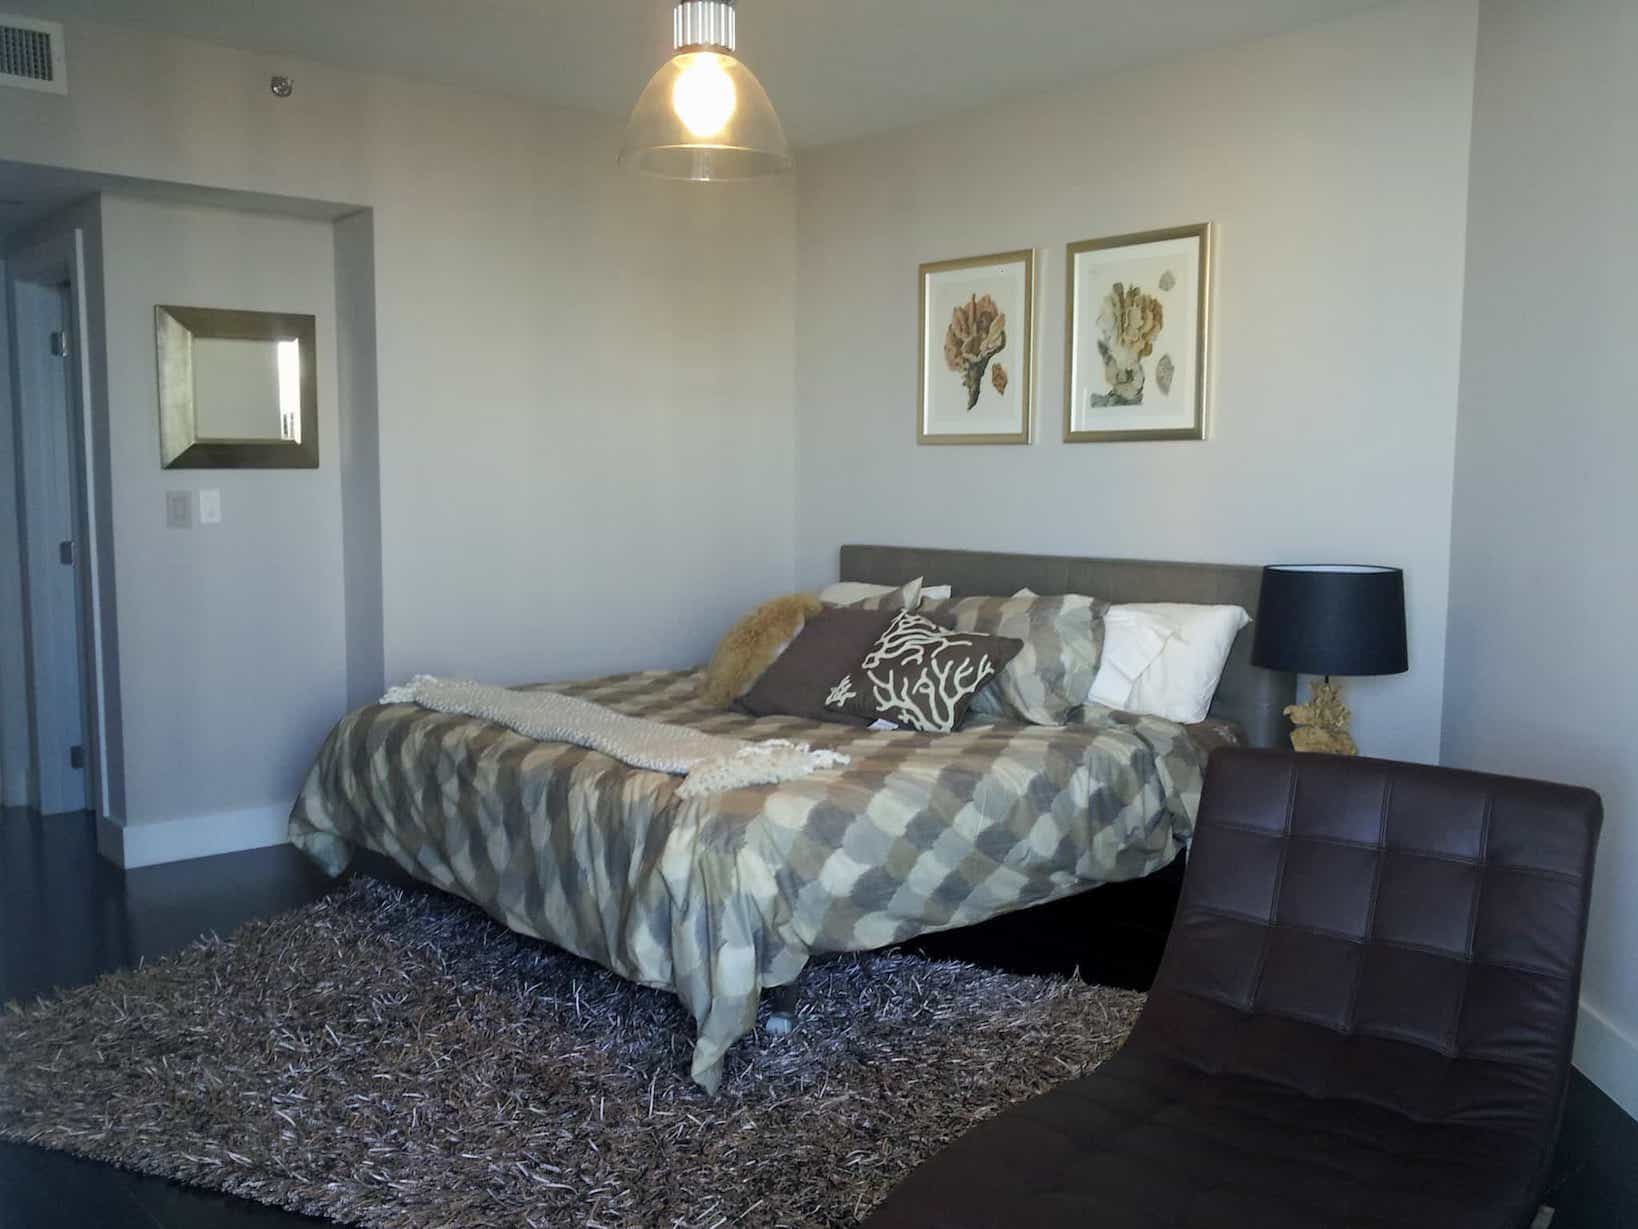 Contemporary Coastal Bedroom With Shag Rug And Chocolate Brown Leather Chaise Is The Perfect Spot For Reading In This Guest Bedroom Retreat (View 8 of 15)